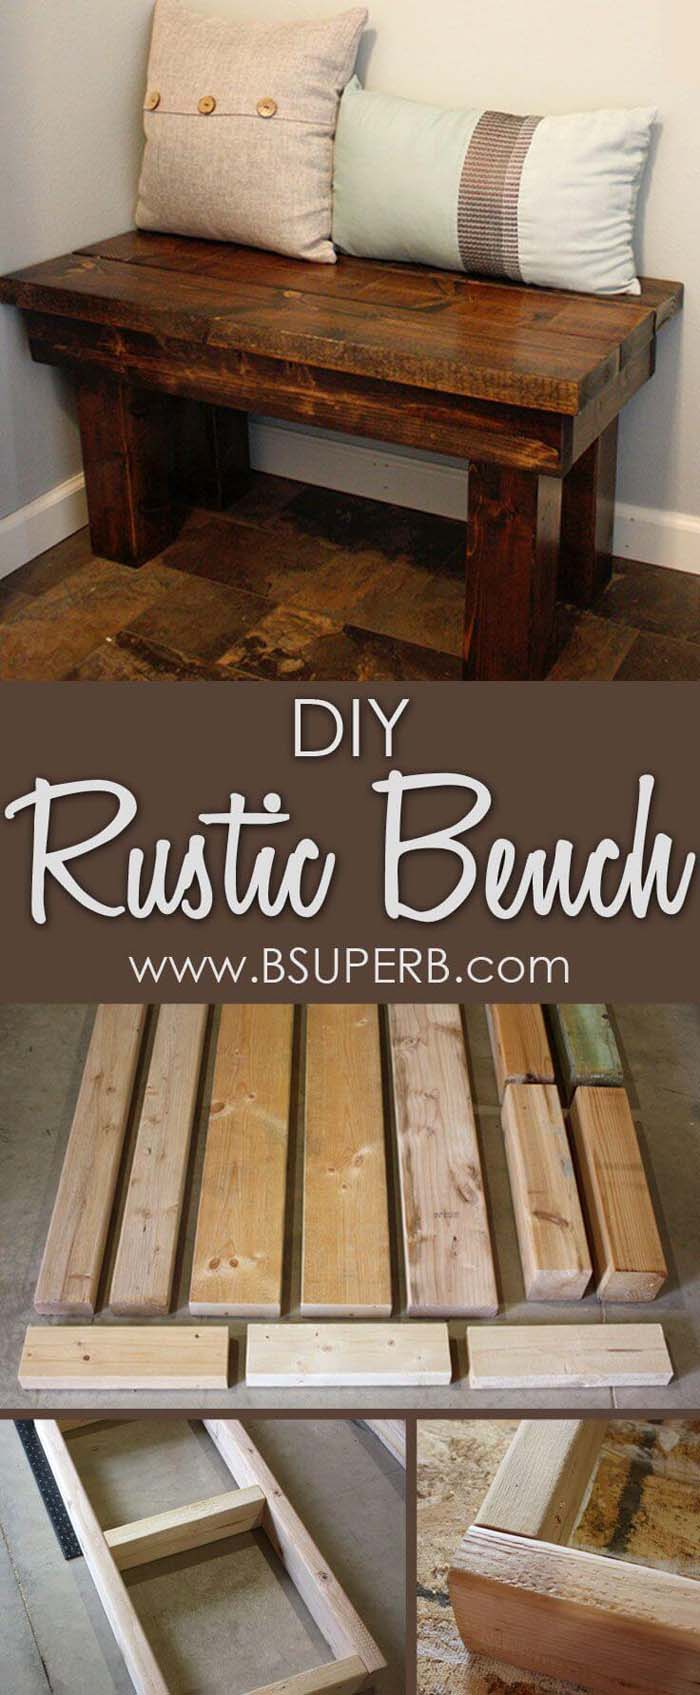 Inexpensive Rustic Wooden Bench Seat #entrywaybench #diy #decorhomeideas